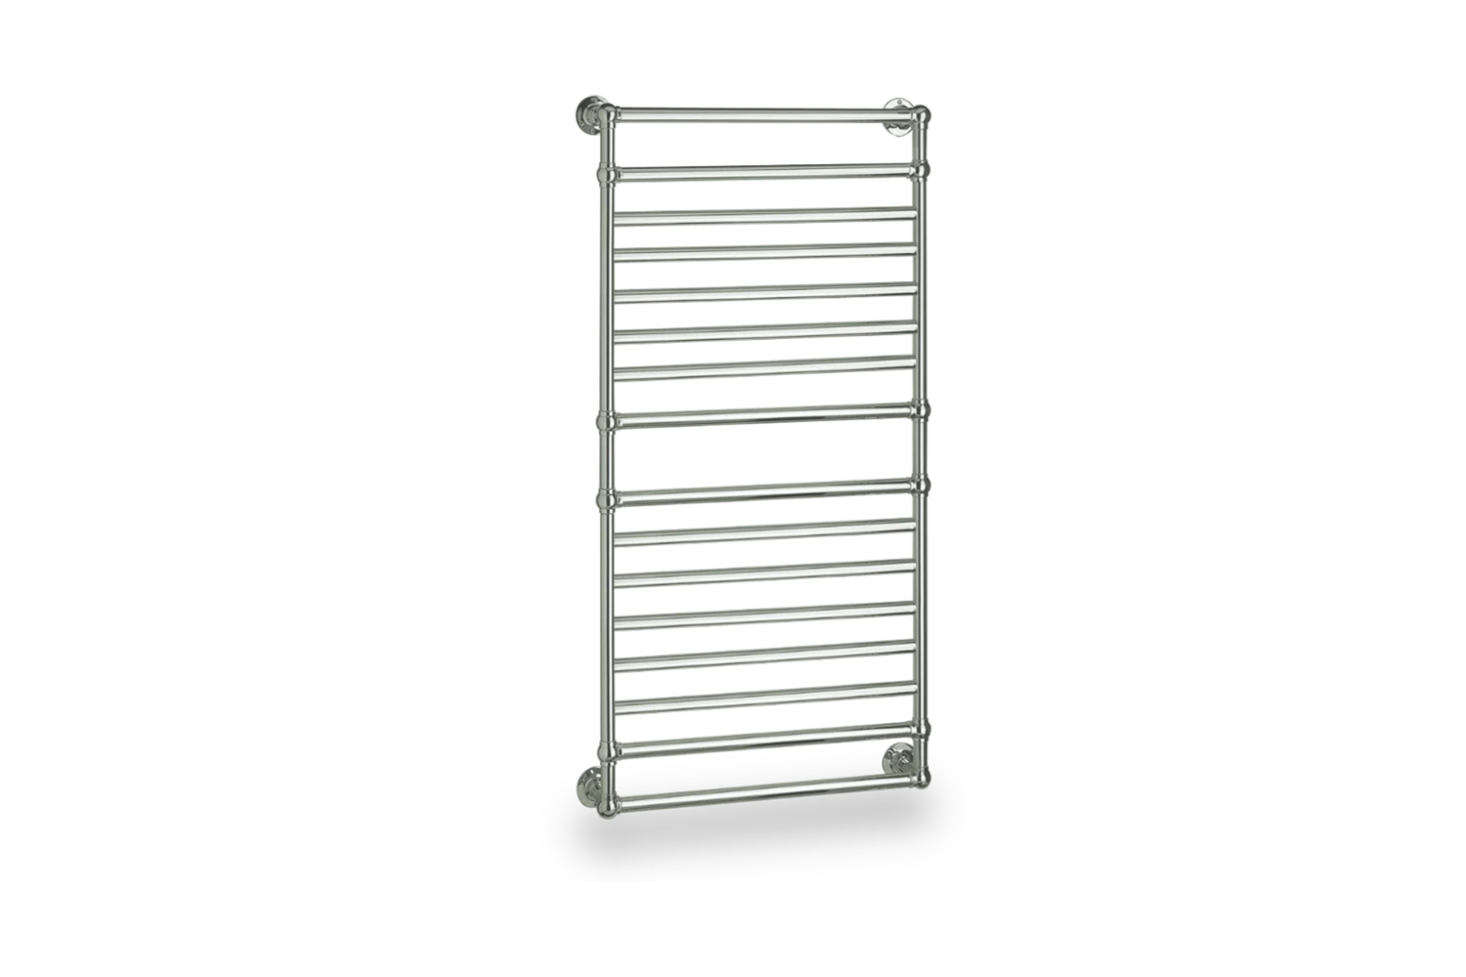 The Myson Ullswater Master Suite Electric Towel Warmer comes in Polished Chrome, Polished Nickel, Satin Nickel, Regal Brass, Oil-Rubbed Bronze, and White starting at $2,558.25 at Quality Bath.